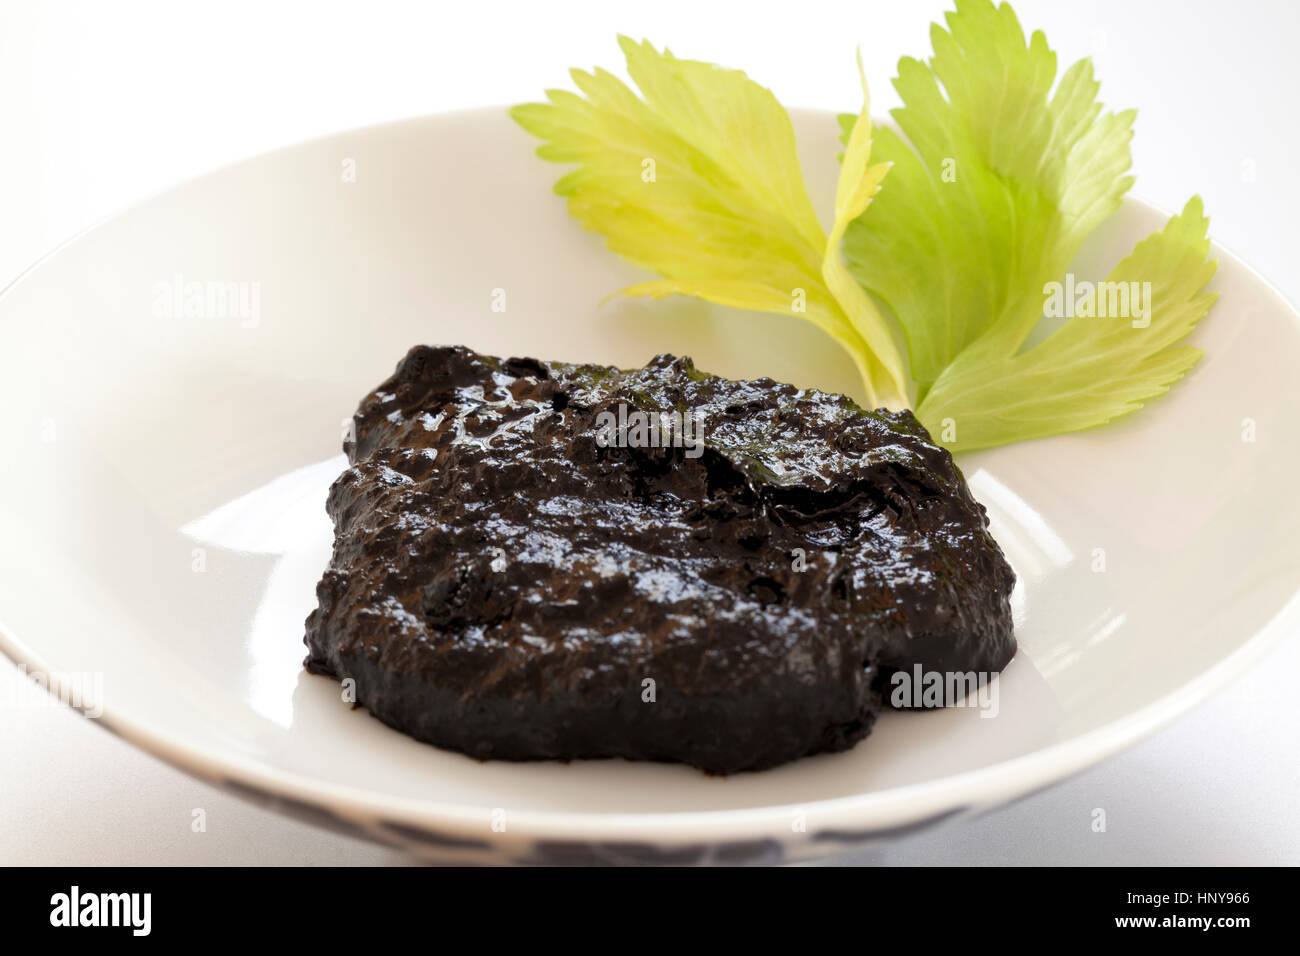 Fermented blacksoybean sauce (Douchi) - Stock Image